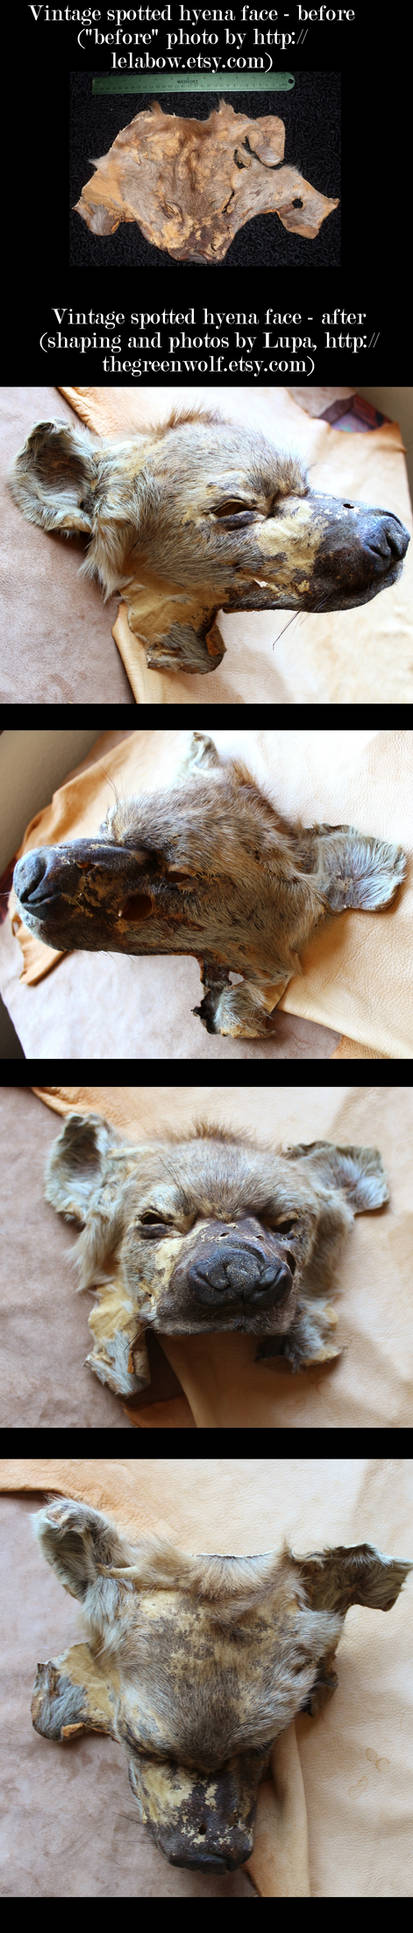 Hyena face reshaping CLICK TO EMBIGGEN